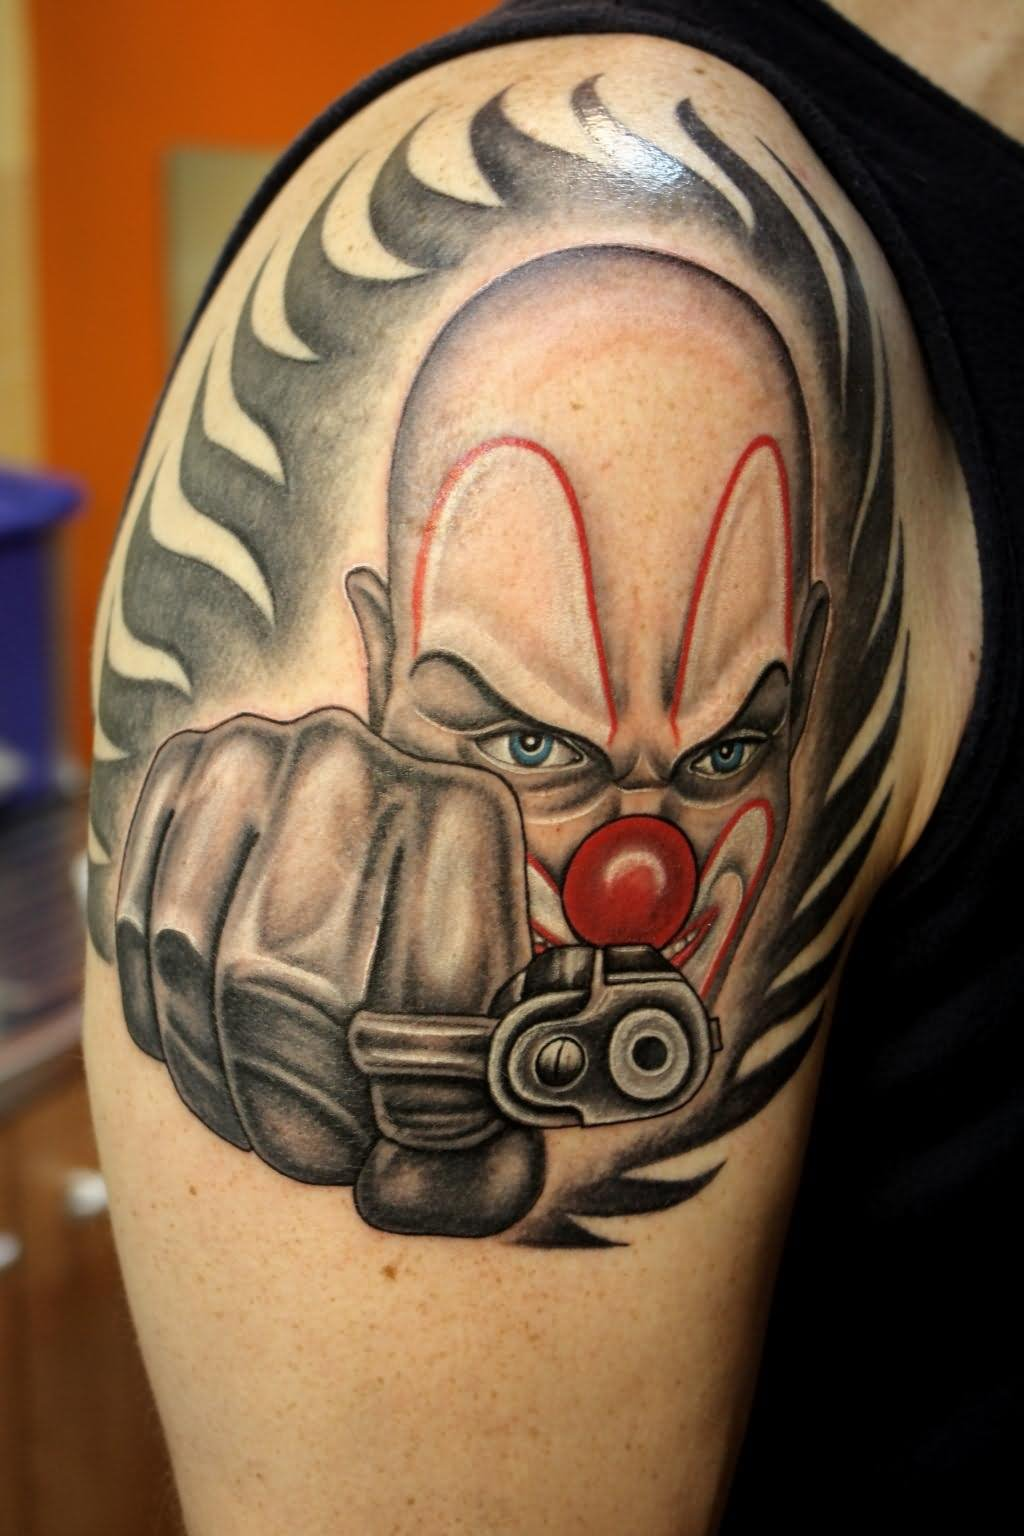 Gangster Clown Tattoo Design